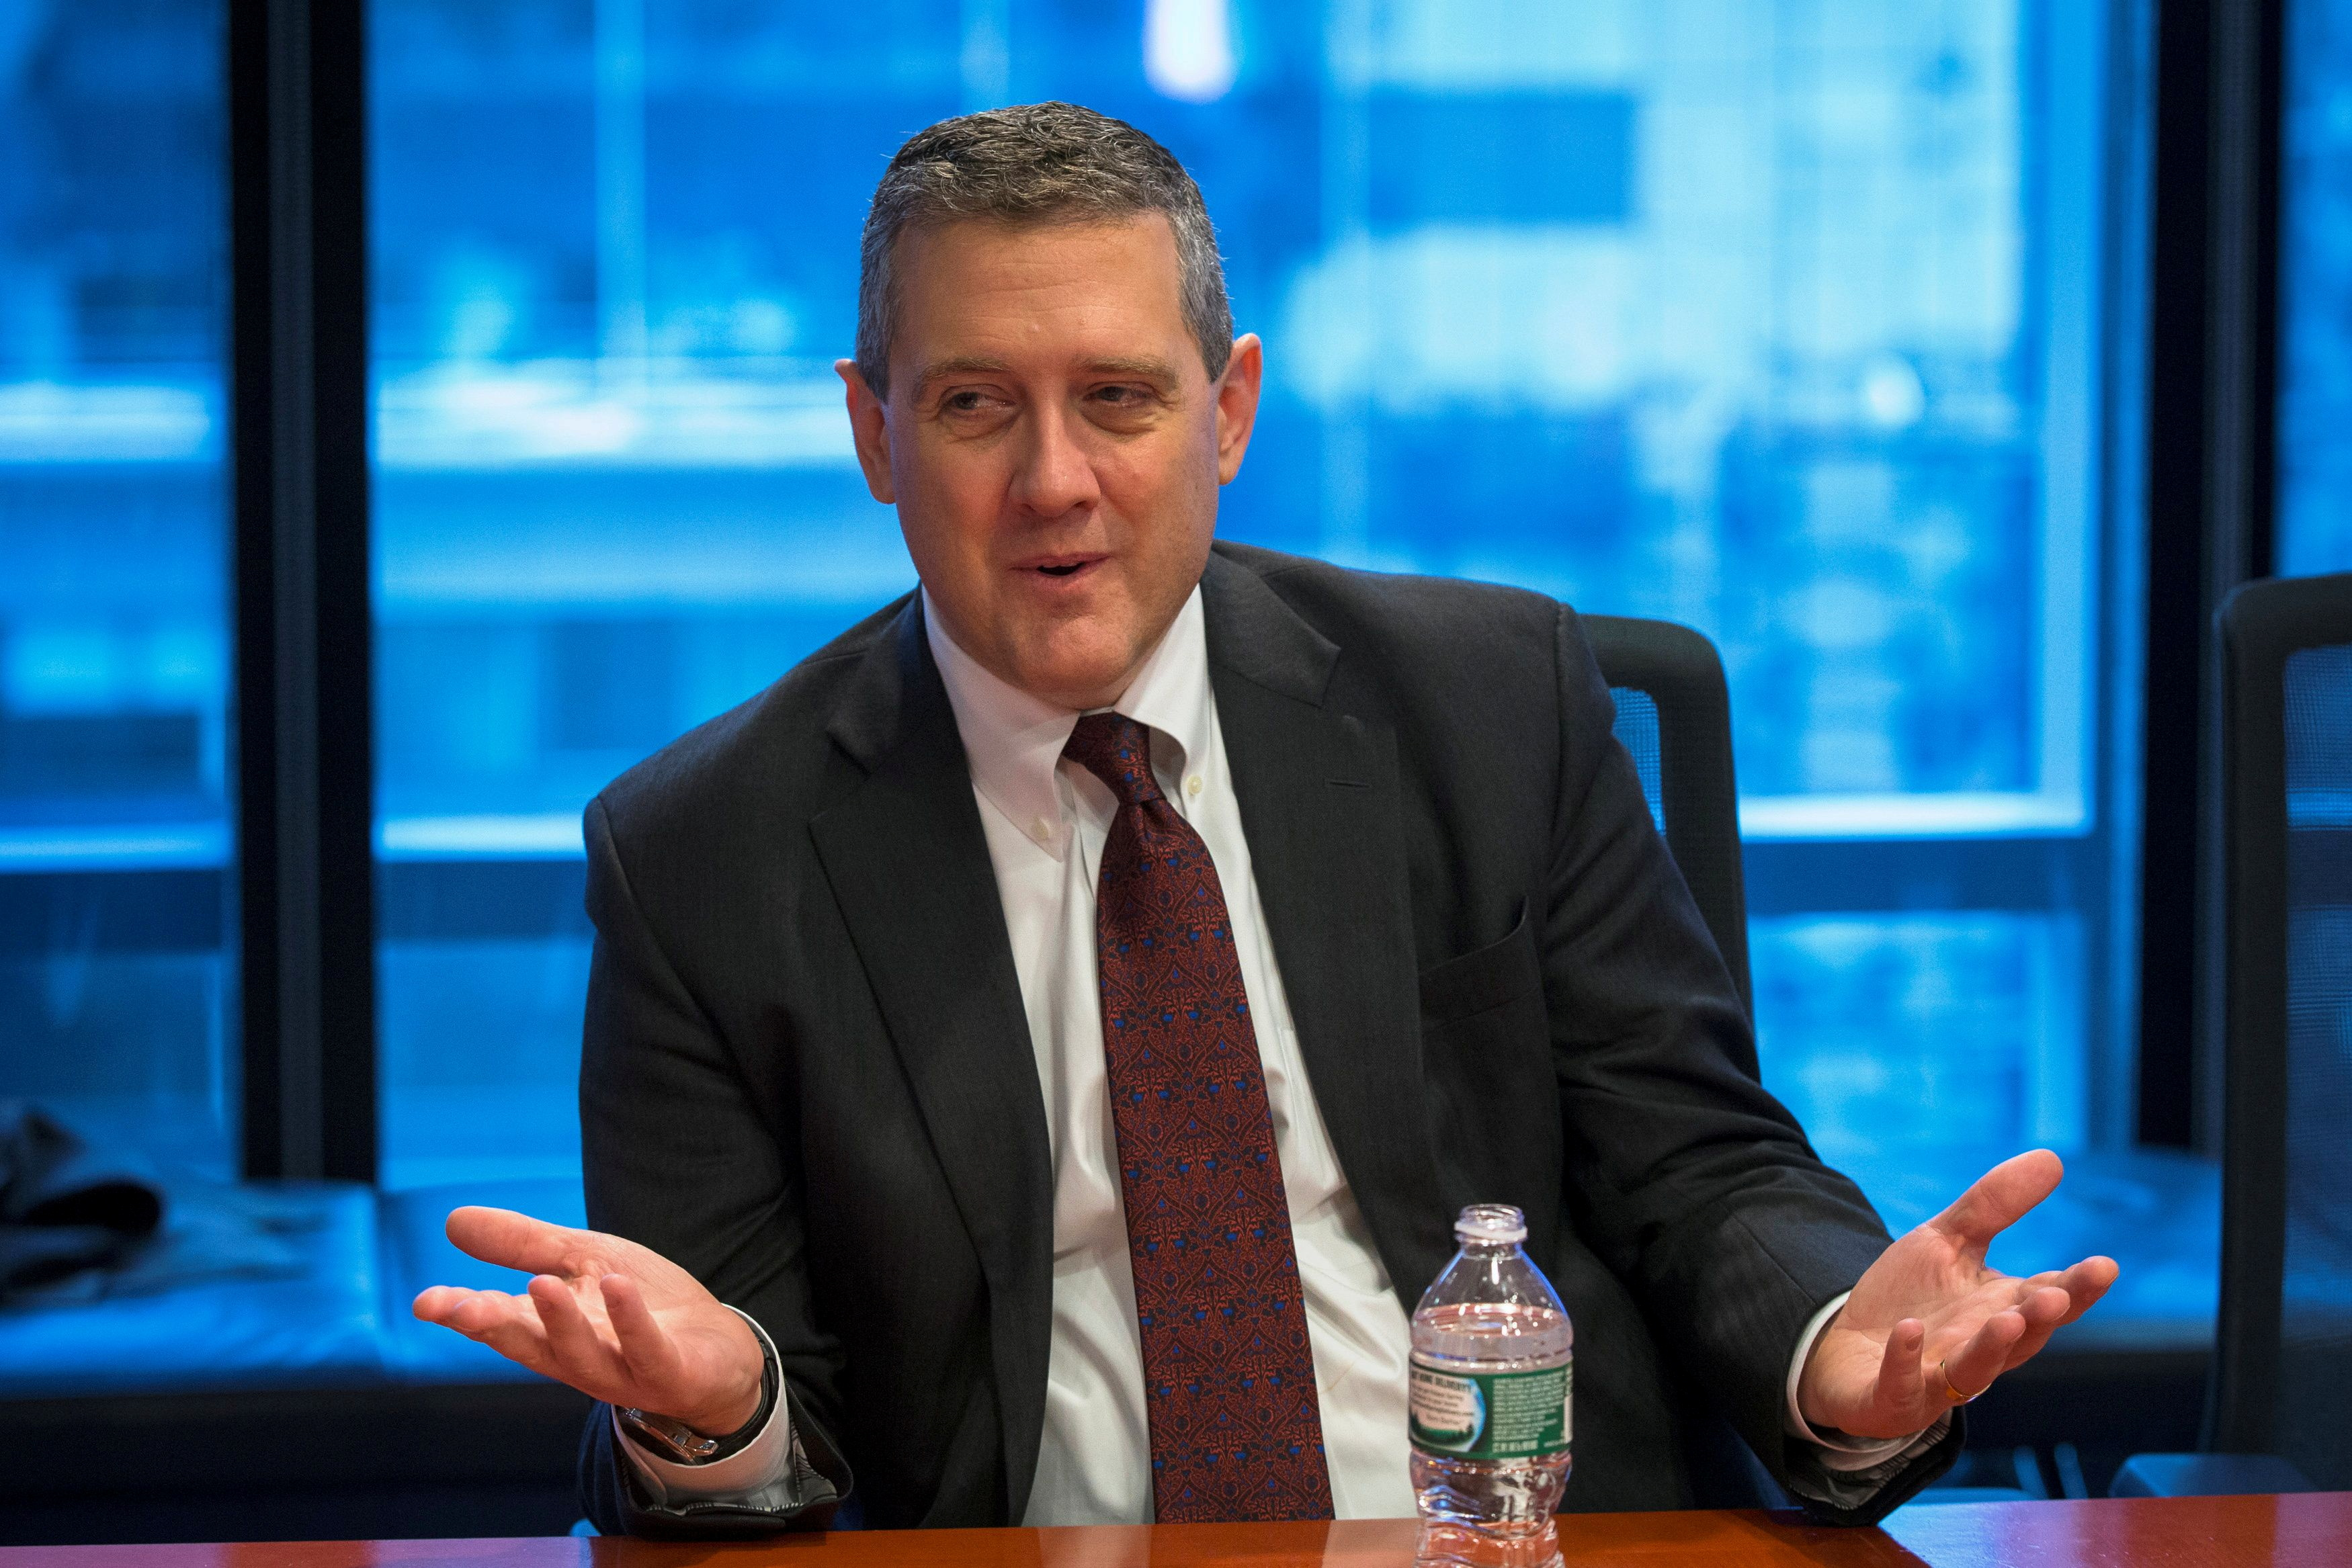 St. Louis Fed President James Bullard speaks about the U.S. economy during an interview in New York February 26, 2015. REUTERS/Lucas Jackson/File Photo